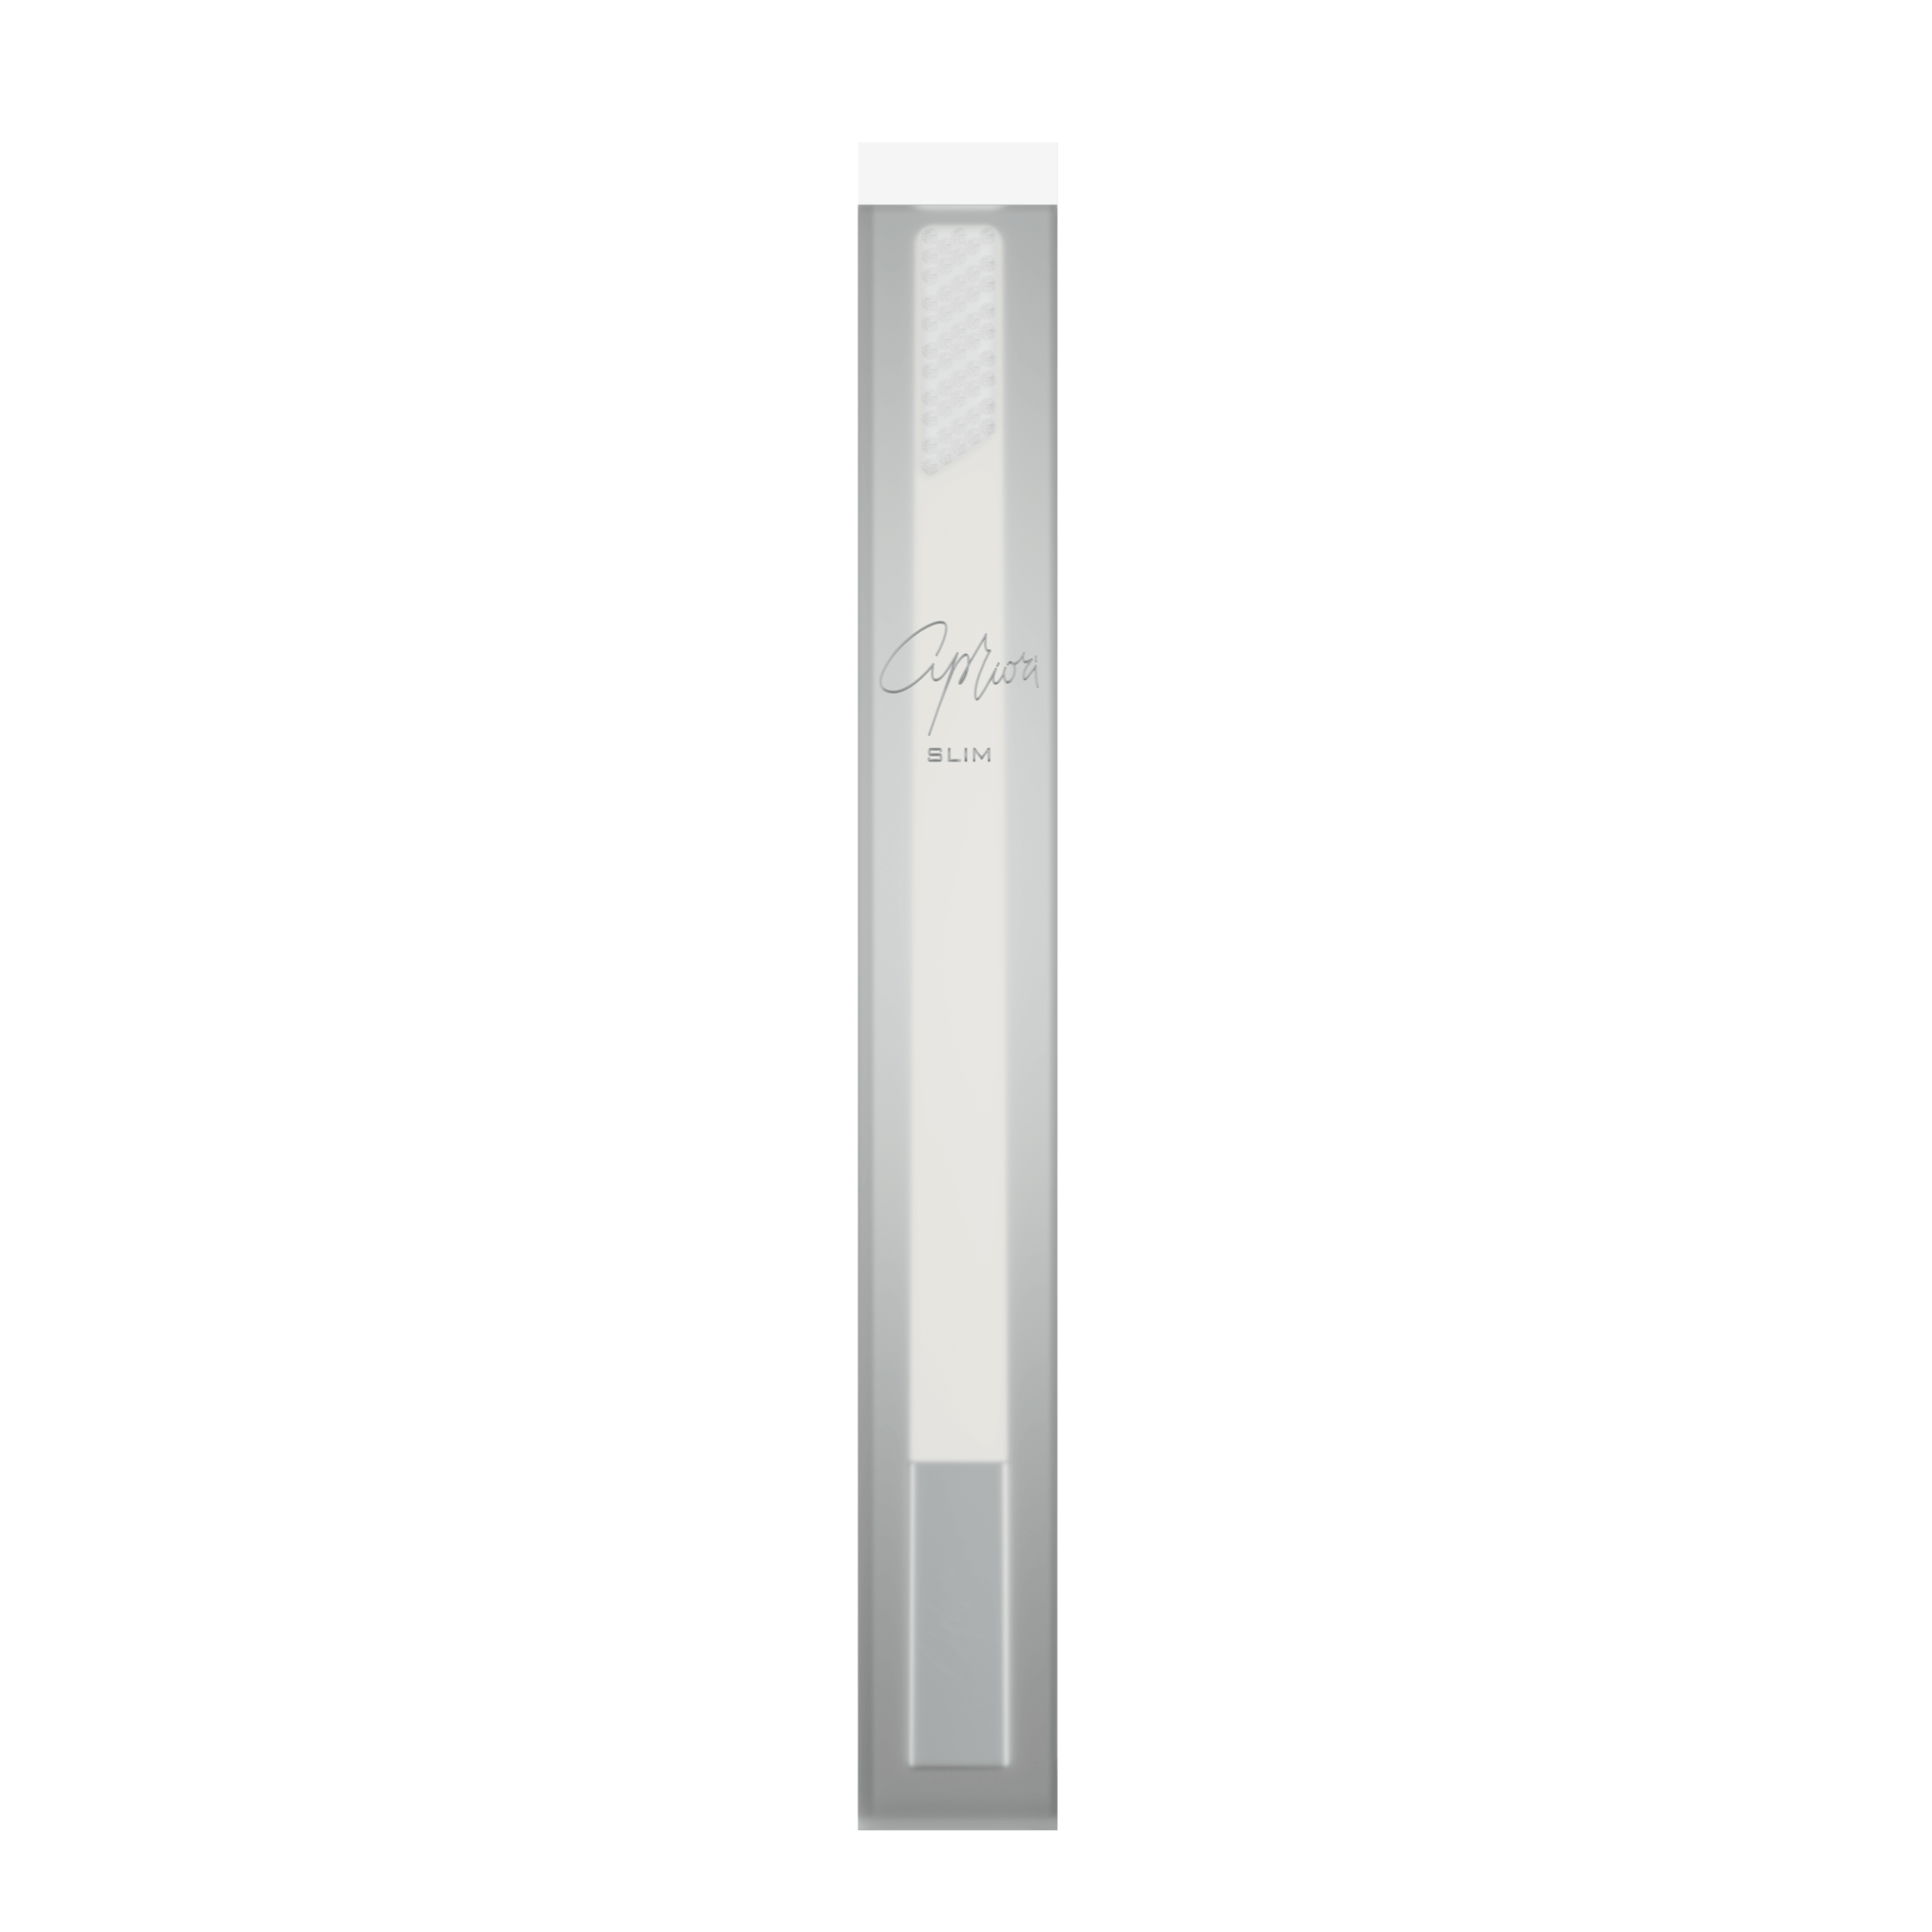 SLIM by Apriori white & silver disposable toothbrush package